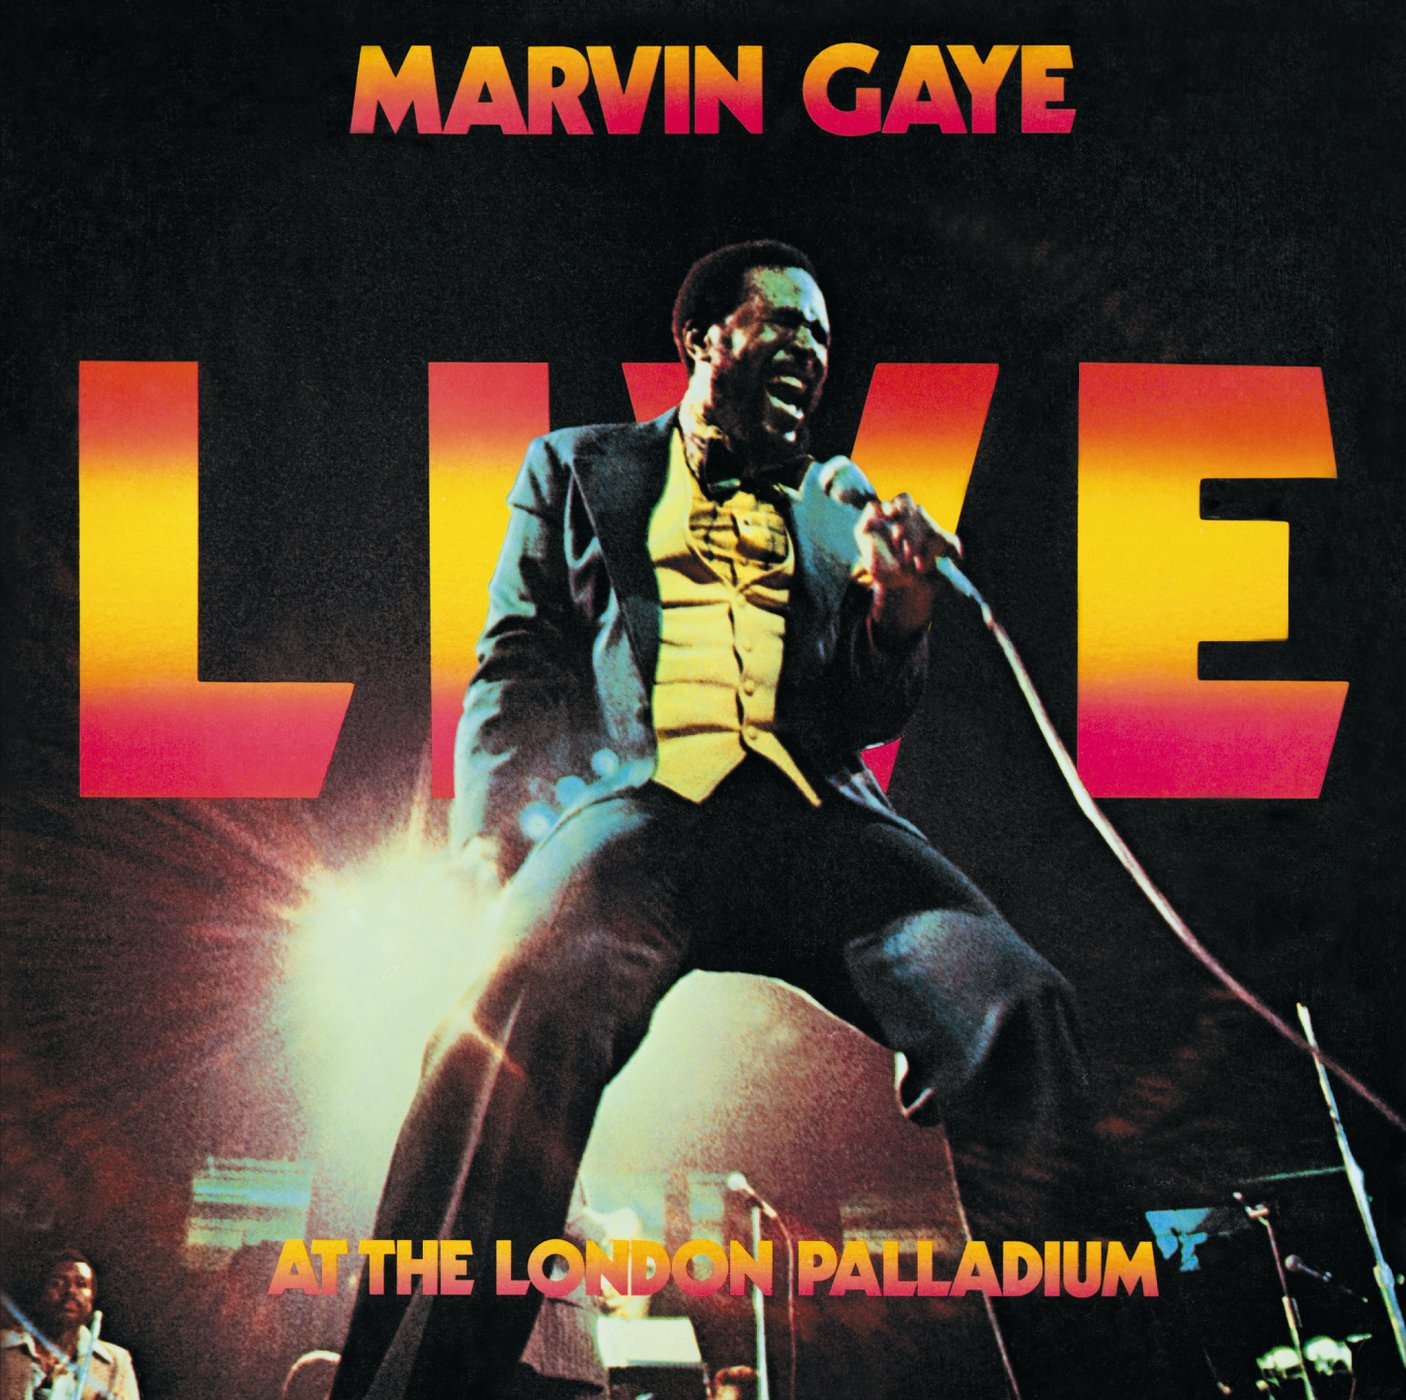 Live At The London Palladium (Remastered) by Motown Records